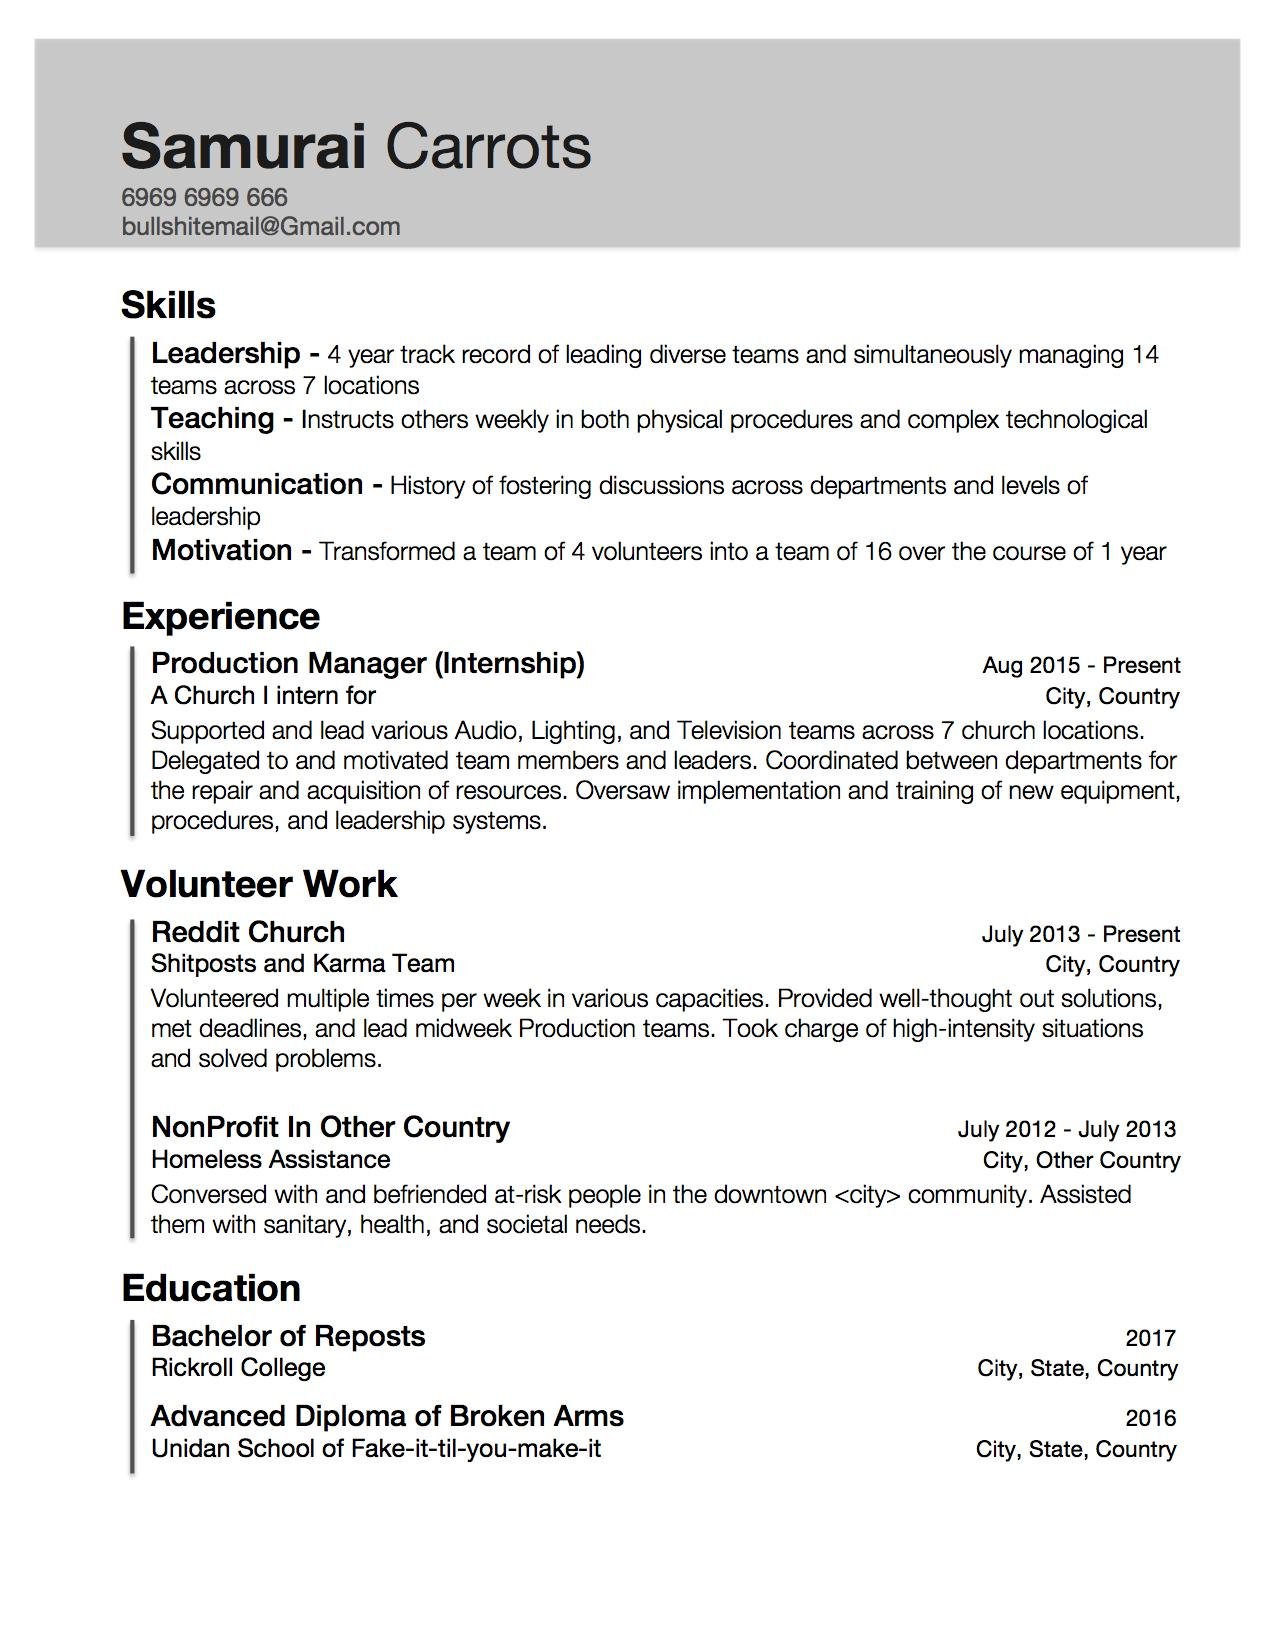 resume with little work experience but skills acquired through internship and Resume Should I Put Volunteer Work On Resume